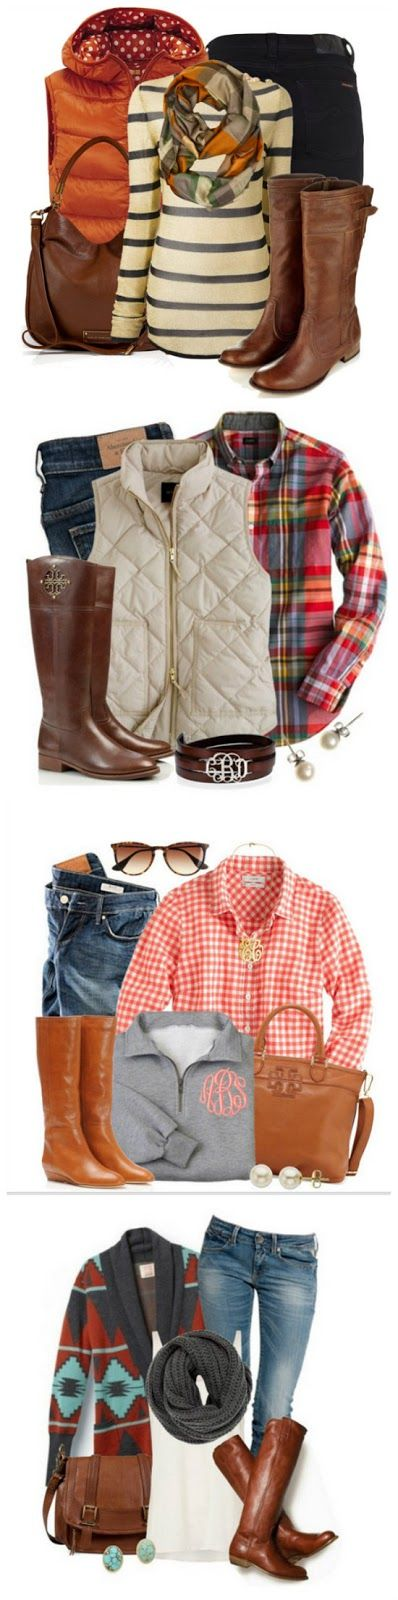 Cozy+Fall+Fashion.png (398×1600)